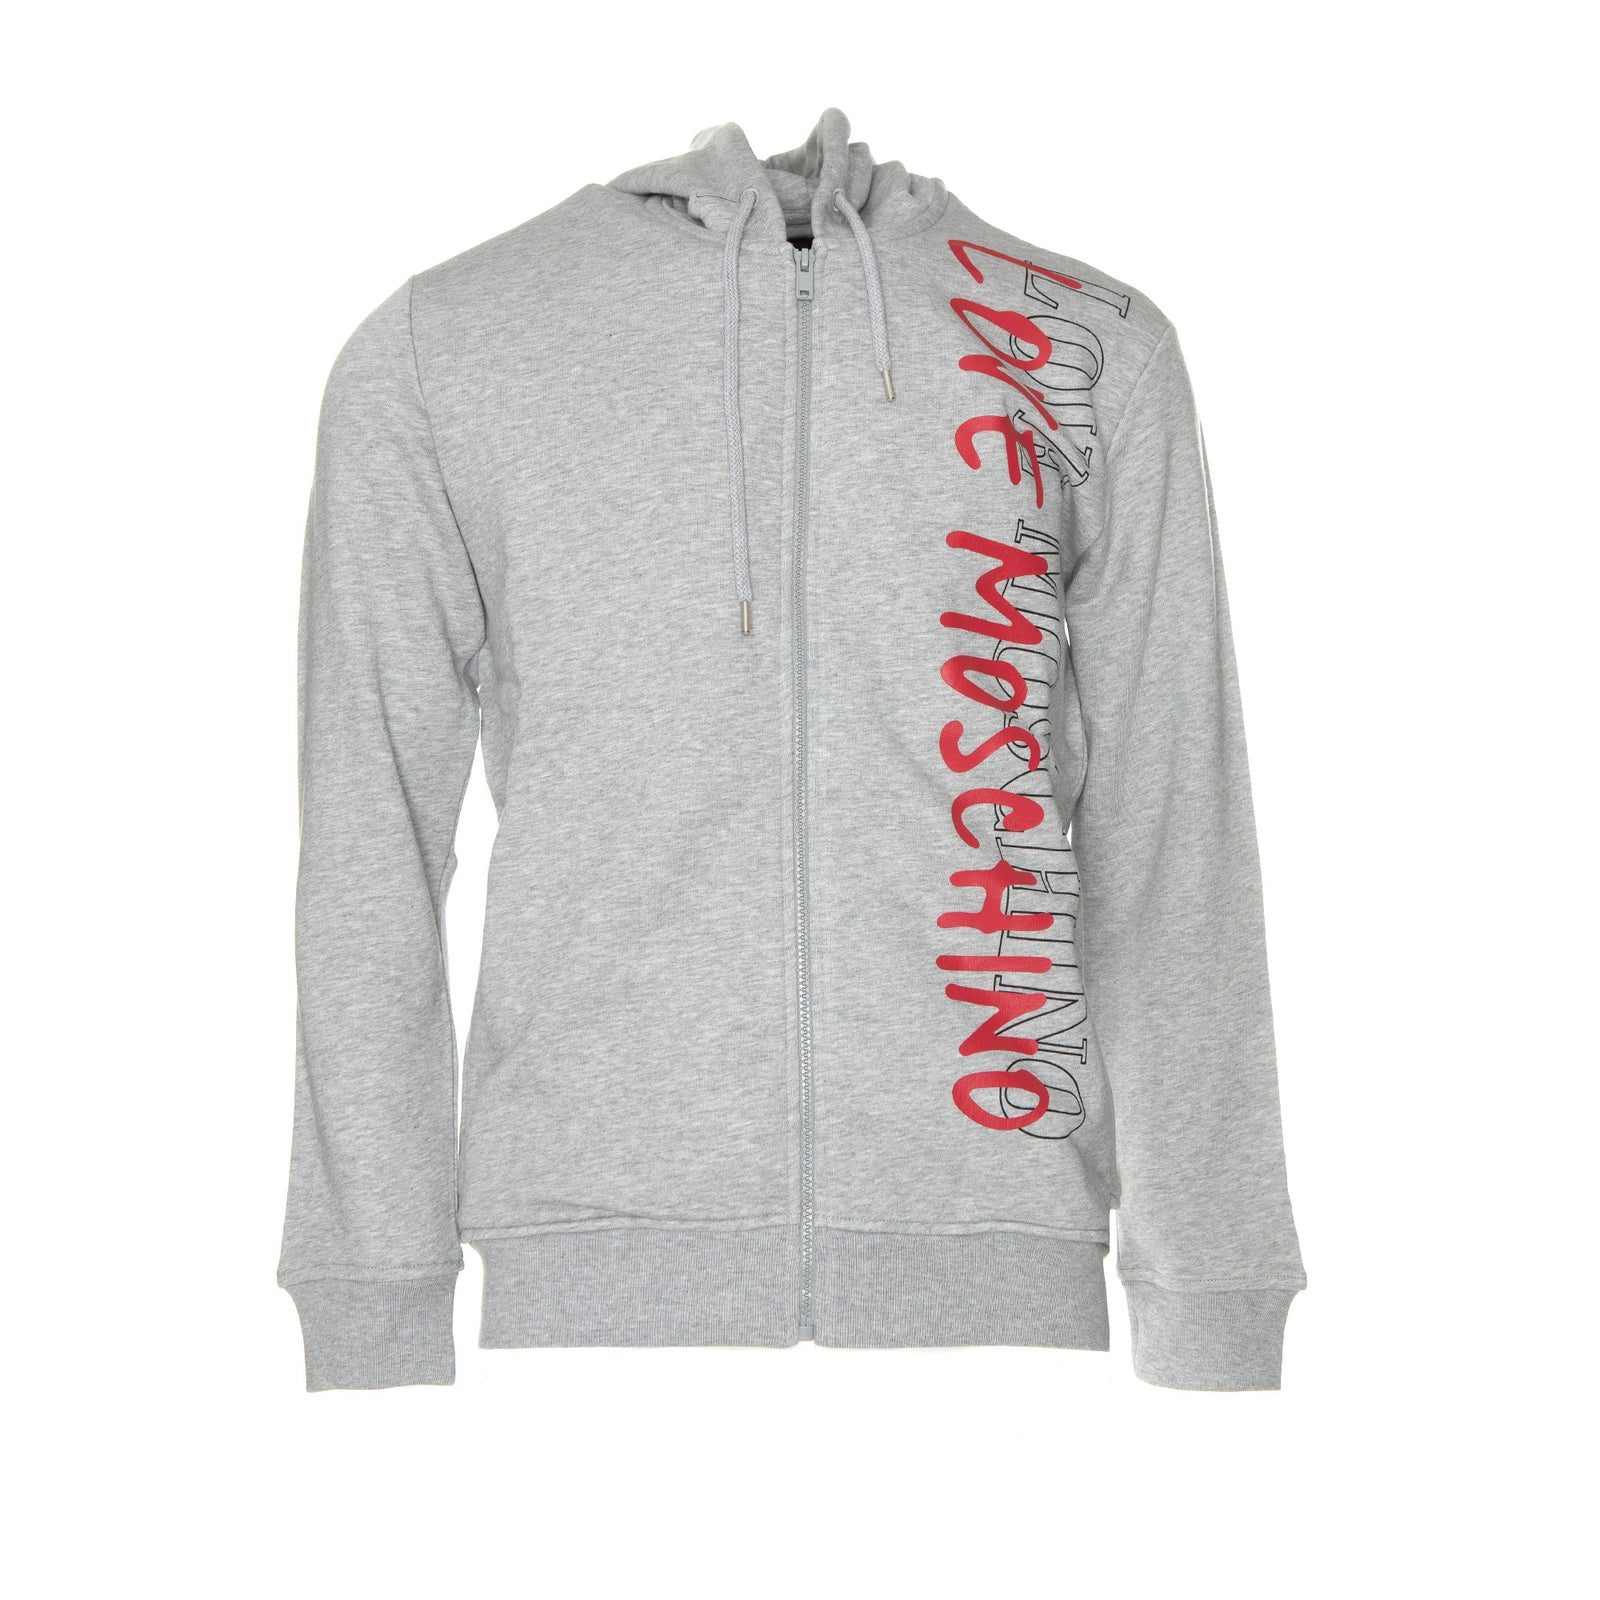 LOVE Moschino Fleece Men's Grey Hoodie  LOVE Moschino Fleece Men's Grey Hoodie